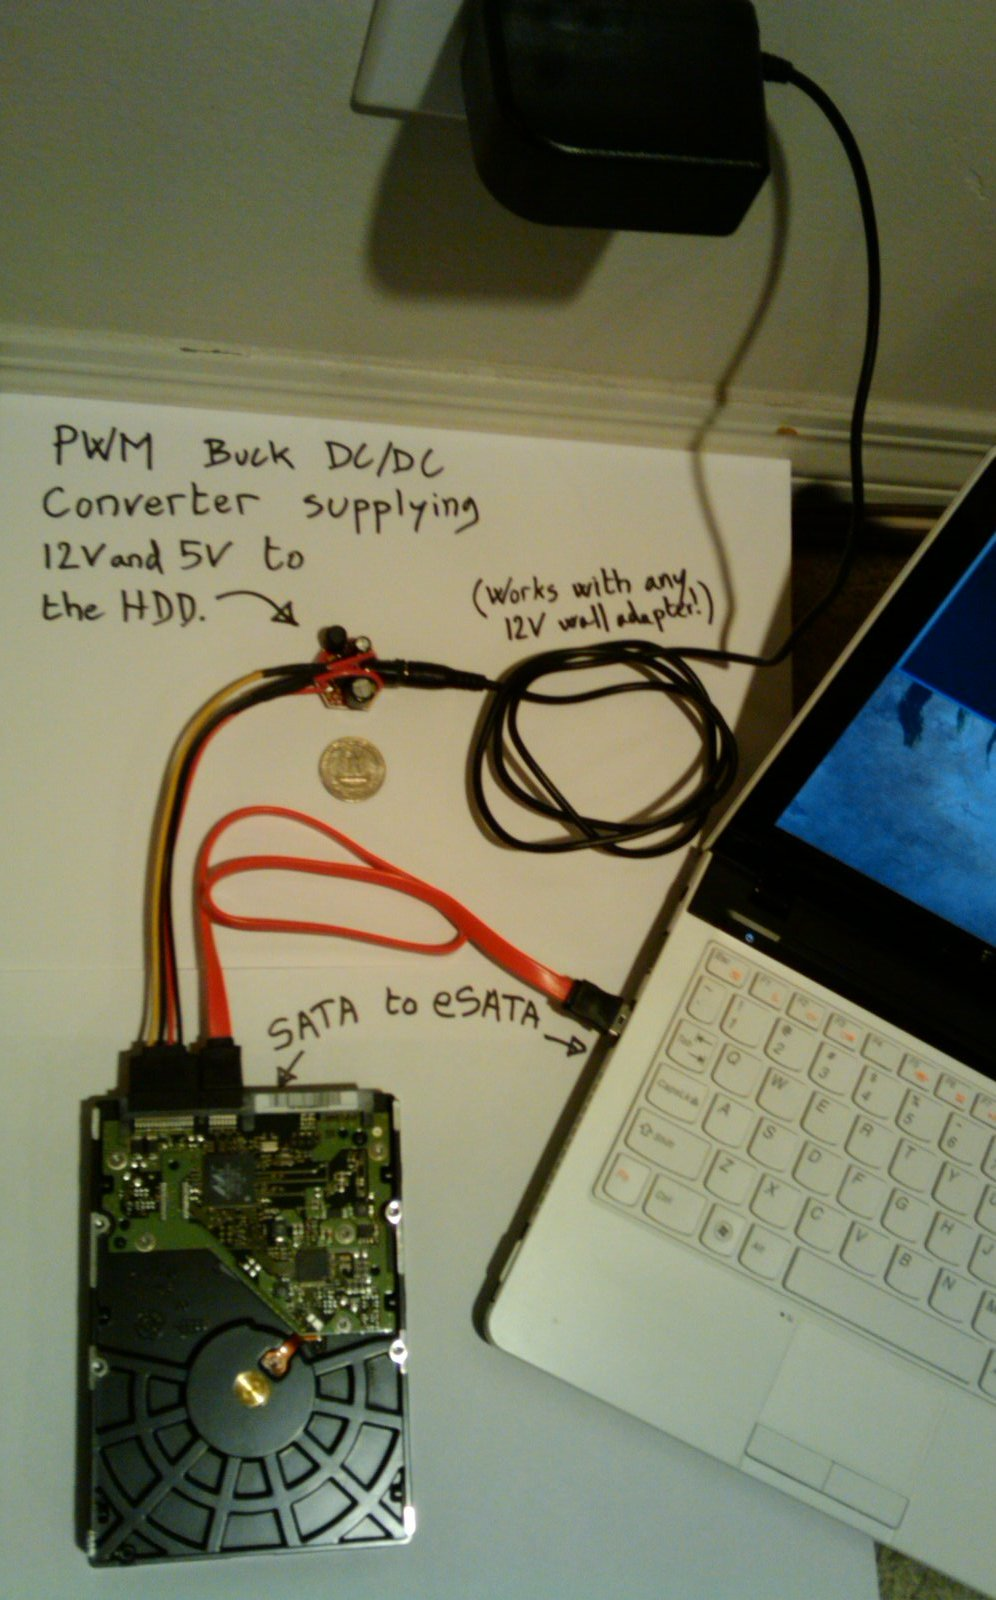 medium resolution of diy coin sized sata power module to replace a harddrive docking stationsata to usb wiring diagram